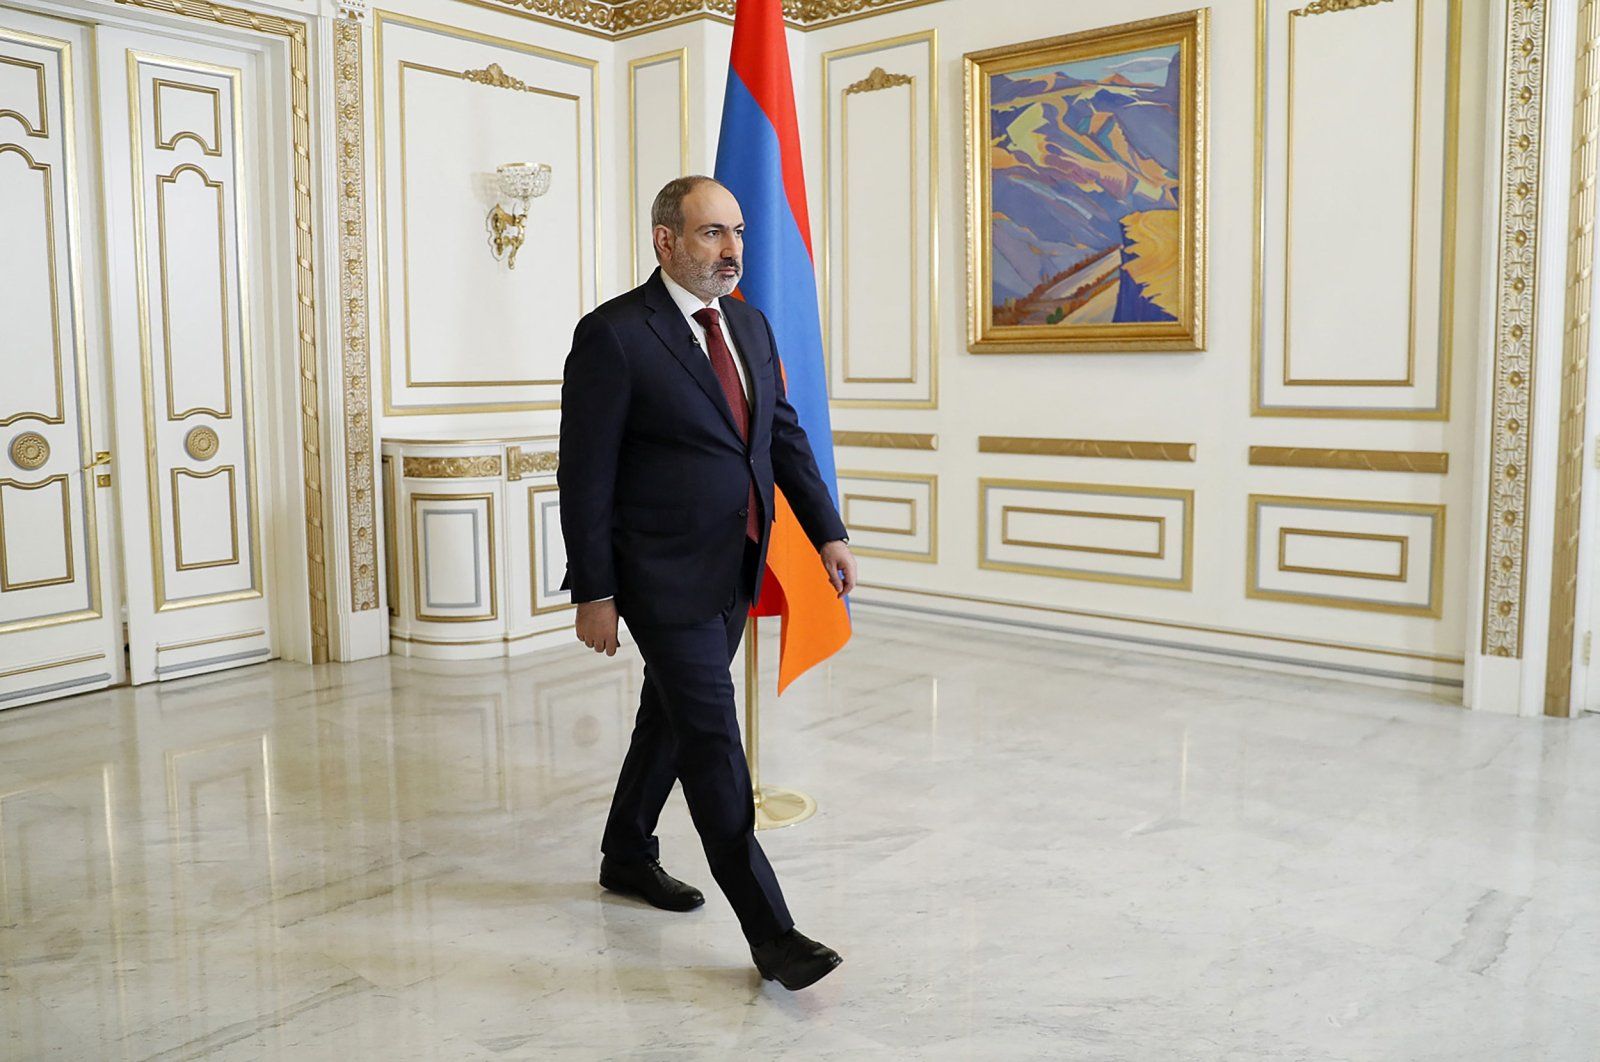 Armenian Prime Minister Nikol Pashinian leaves a hall after addressing the nation in Yerevan, Armenia, Sunday, April 25, 2021. (AFP Photo)